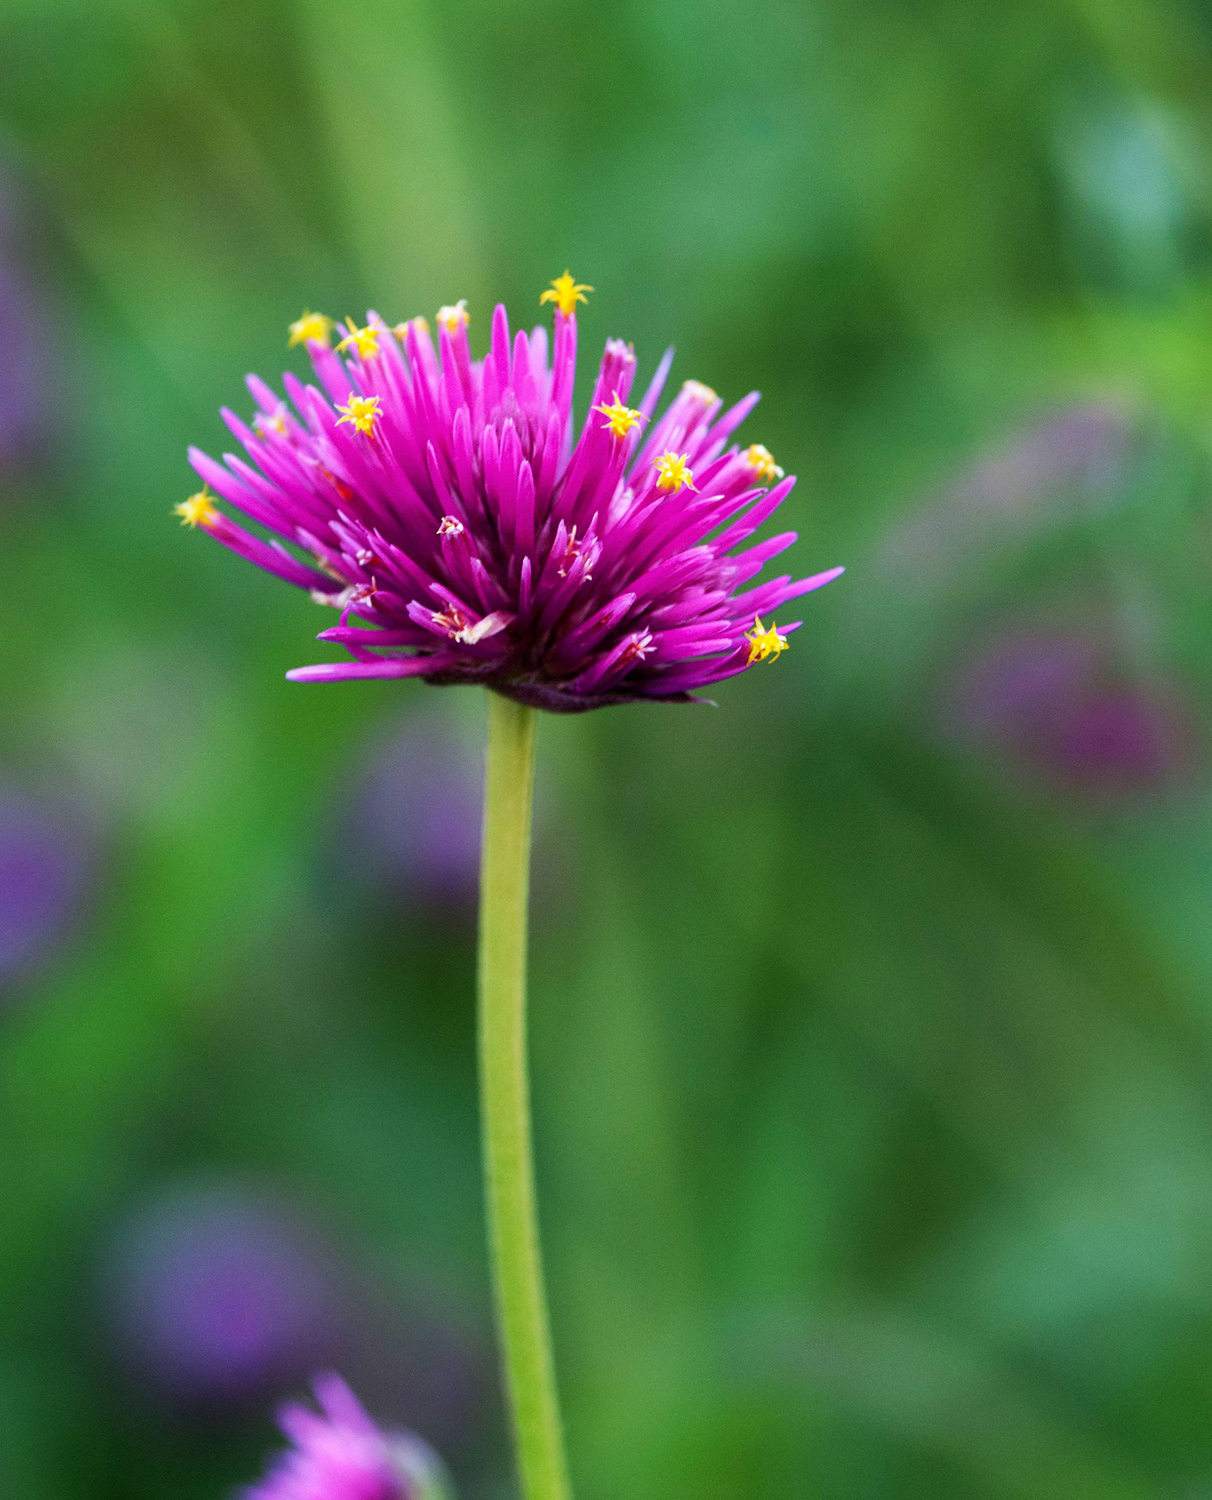 Gomphrena,  Gomphrena pulchella,  'Fireworks' : This was a variety I had to see in person to want to grow - once I did, in the back of Meg's delivery van from Red Daisy Farms, I knew it was a must-have. It's quite tall, very productive, and such a cute little pom pom. Seeds from  GeoSeed.